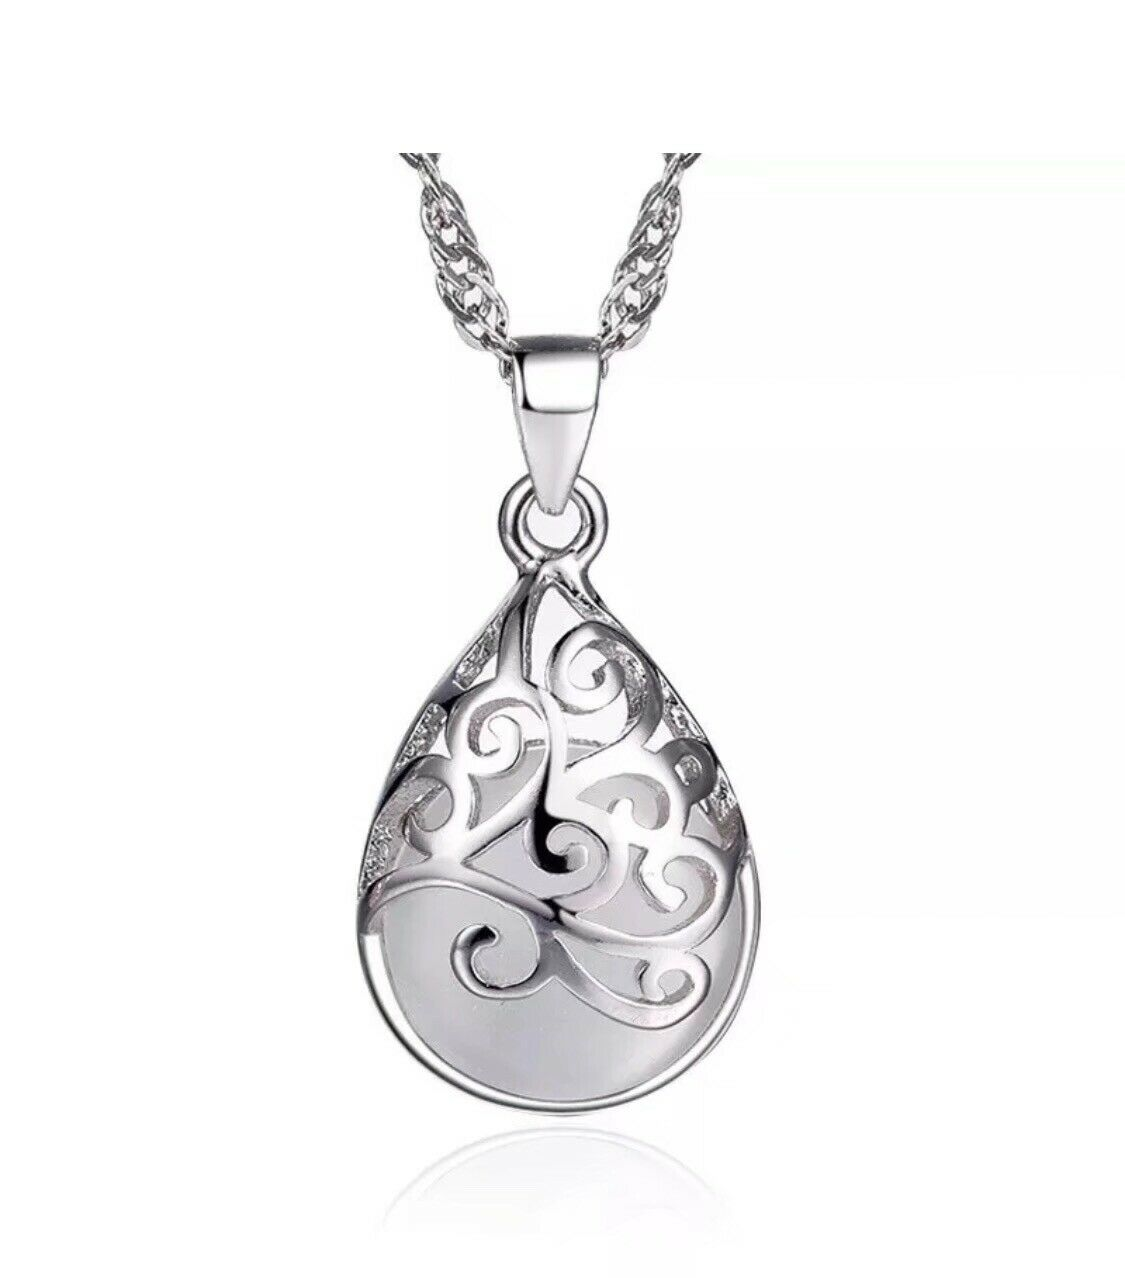 Jewellery - 925 Sterling Silver Moonstone Pendant Chain Necklace Women's Jewellery New Gift.